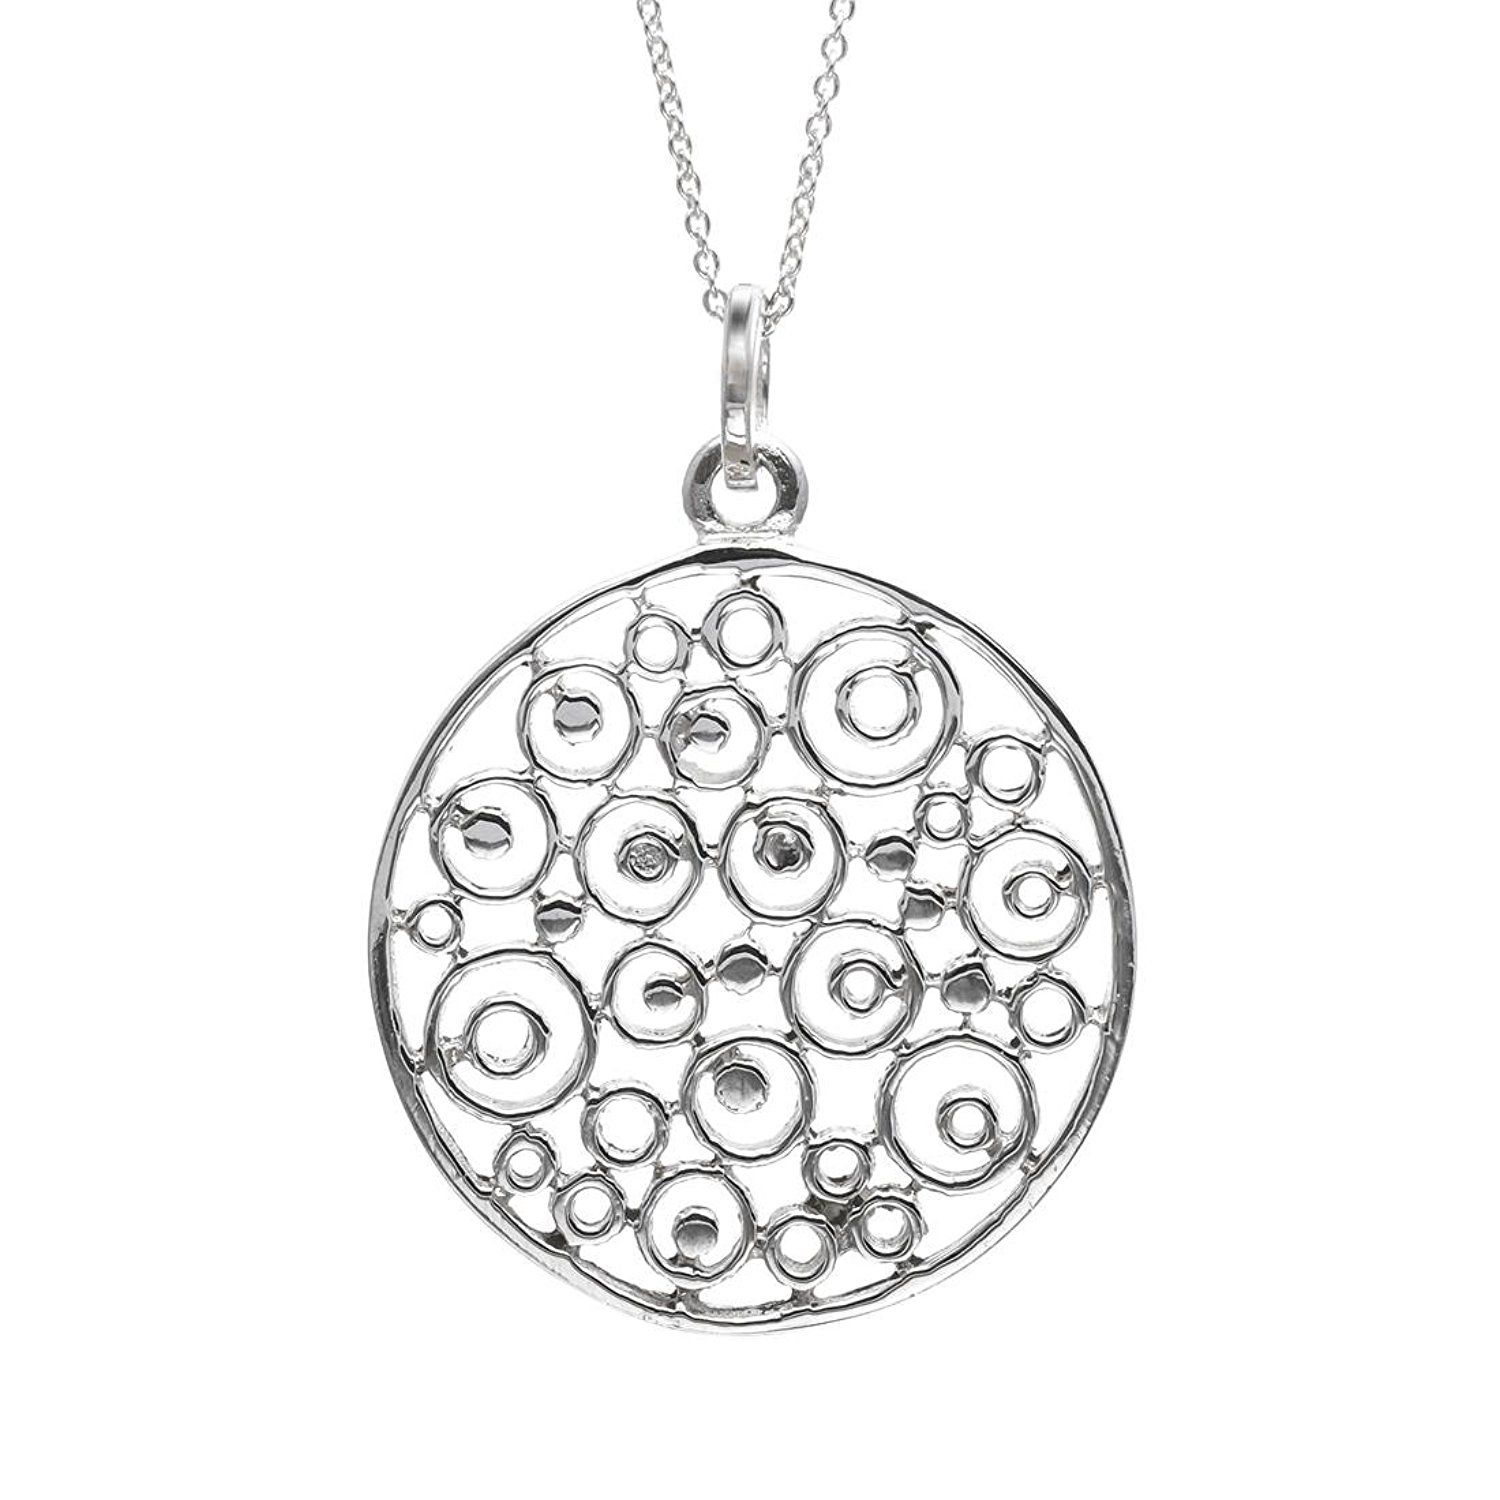 Silverly Women's .925 Sterling Silver Filigree Faberge Locket Chain Necklace, 46 cm